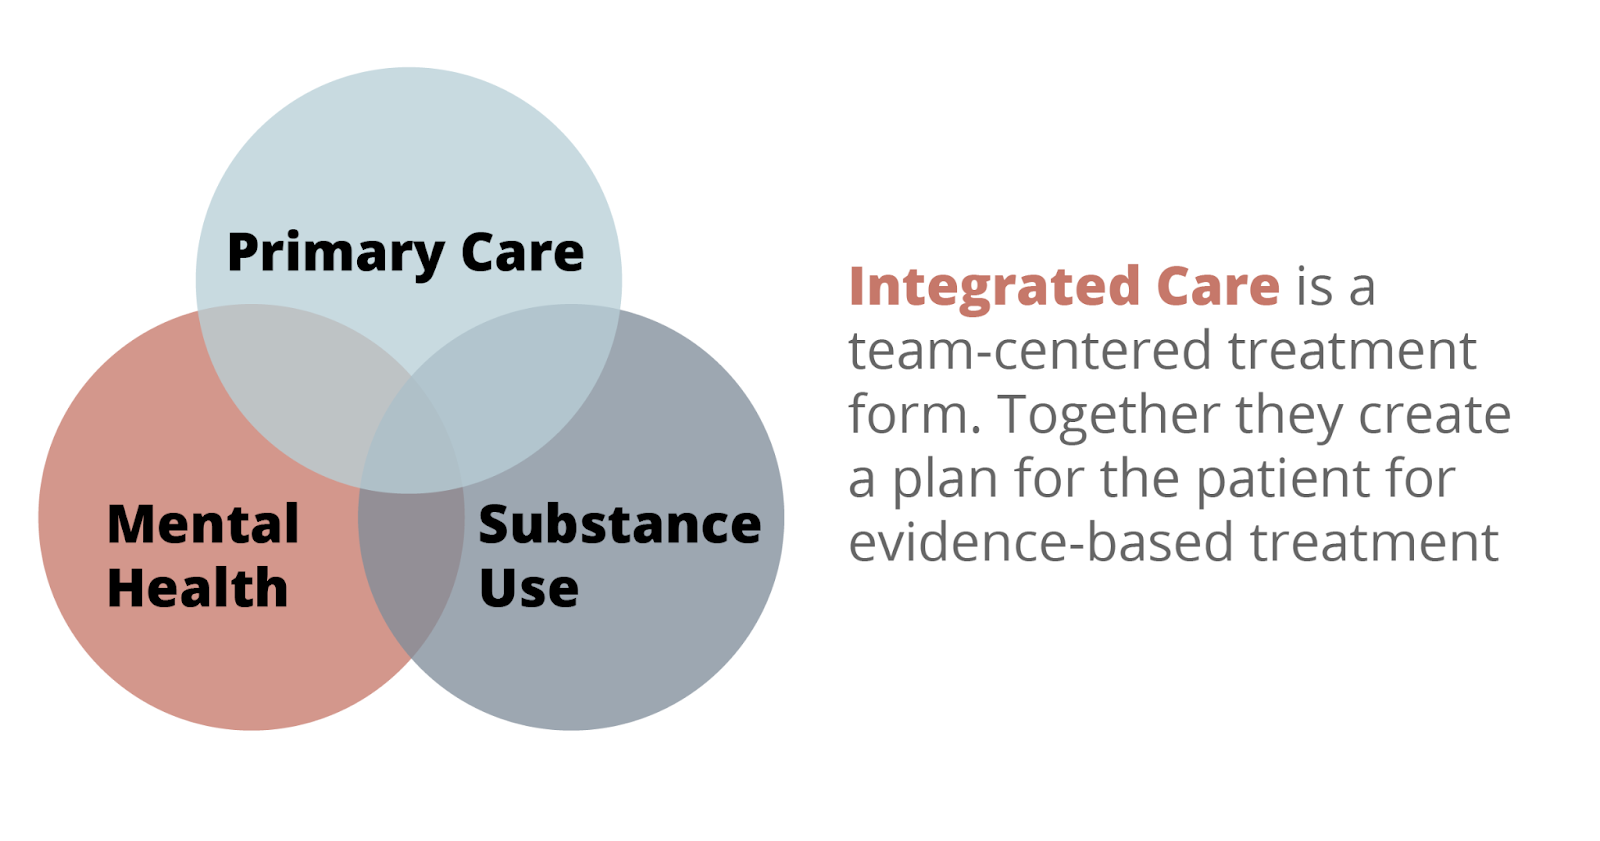 Integrated care is a team-centered treatment form. Together they create a plan for the patient for evidence-based treatment.